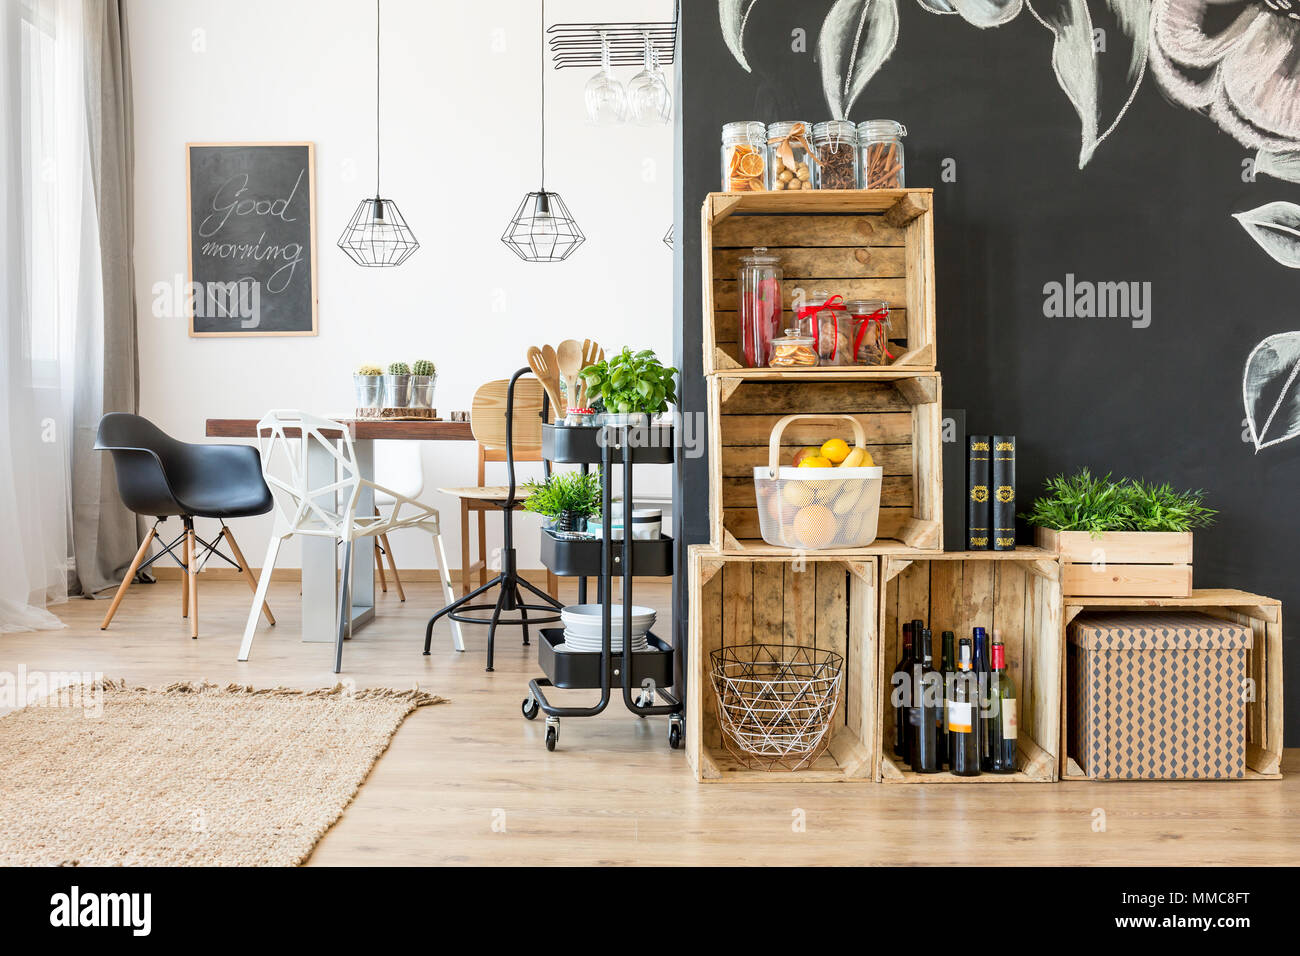 Interior with dining table and diy crate shelves - Stock Image